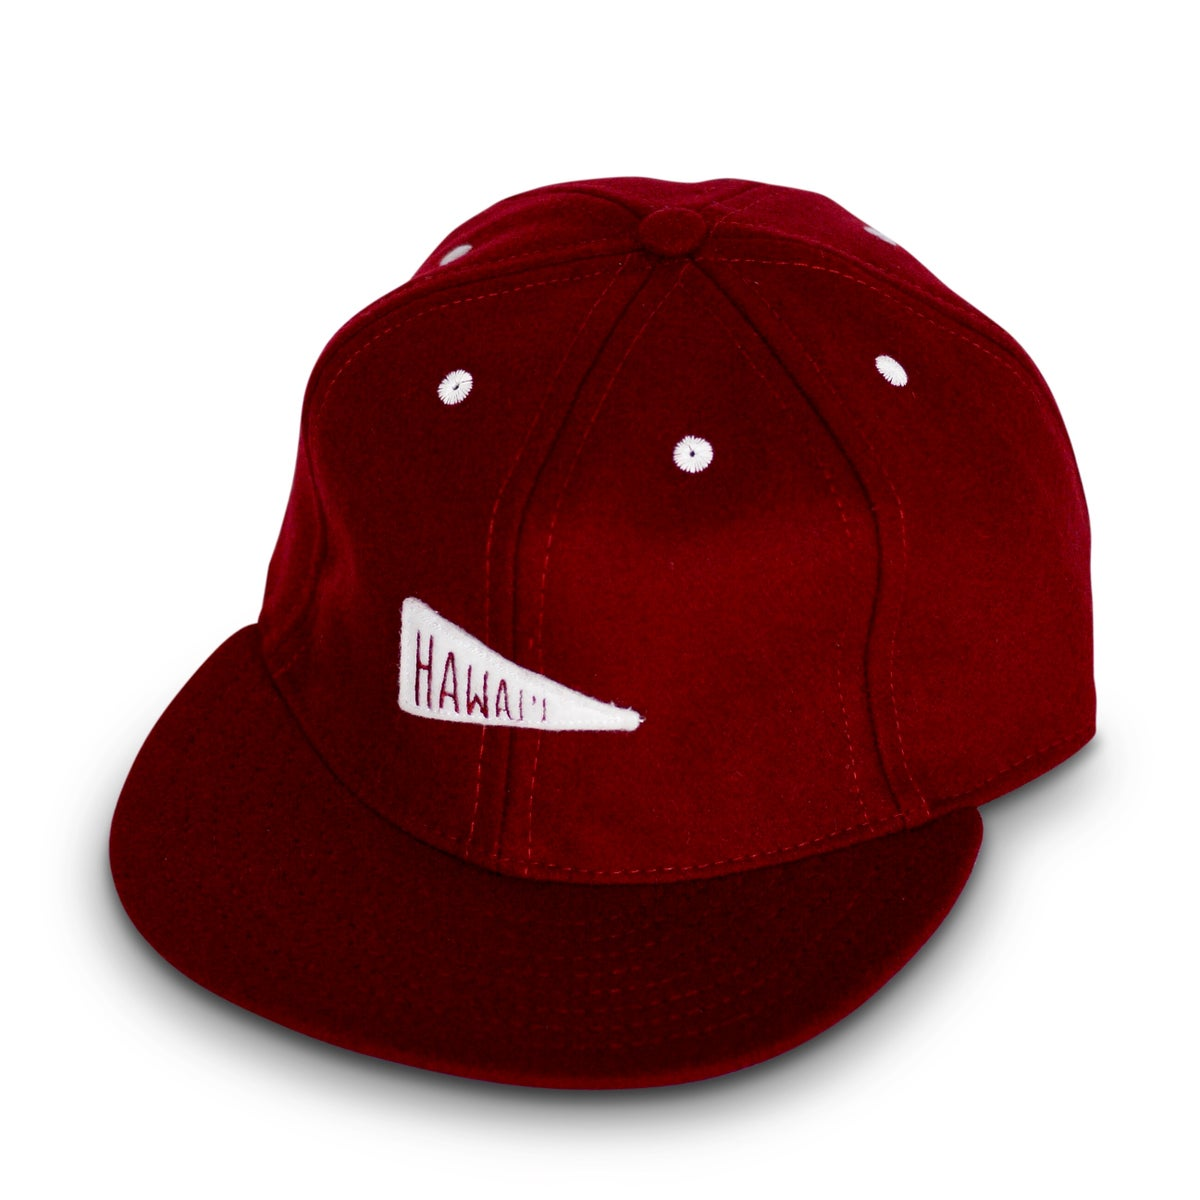 Image of Pennant Ballcap (ed. of 24)